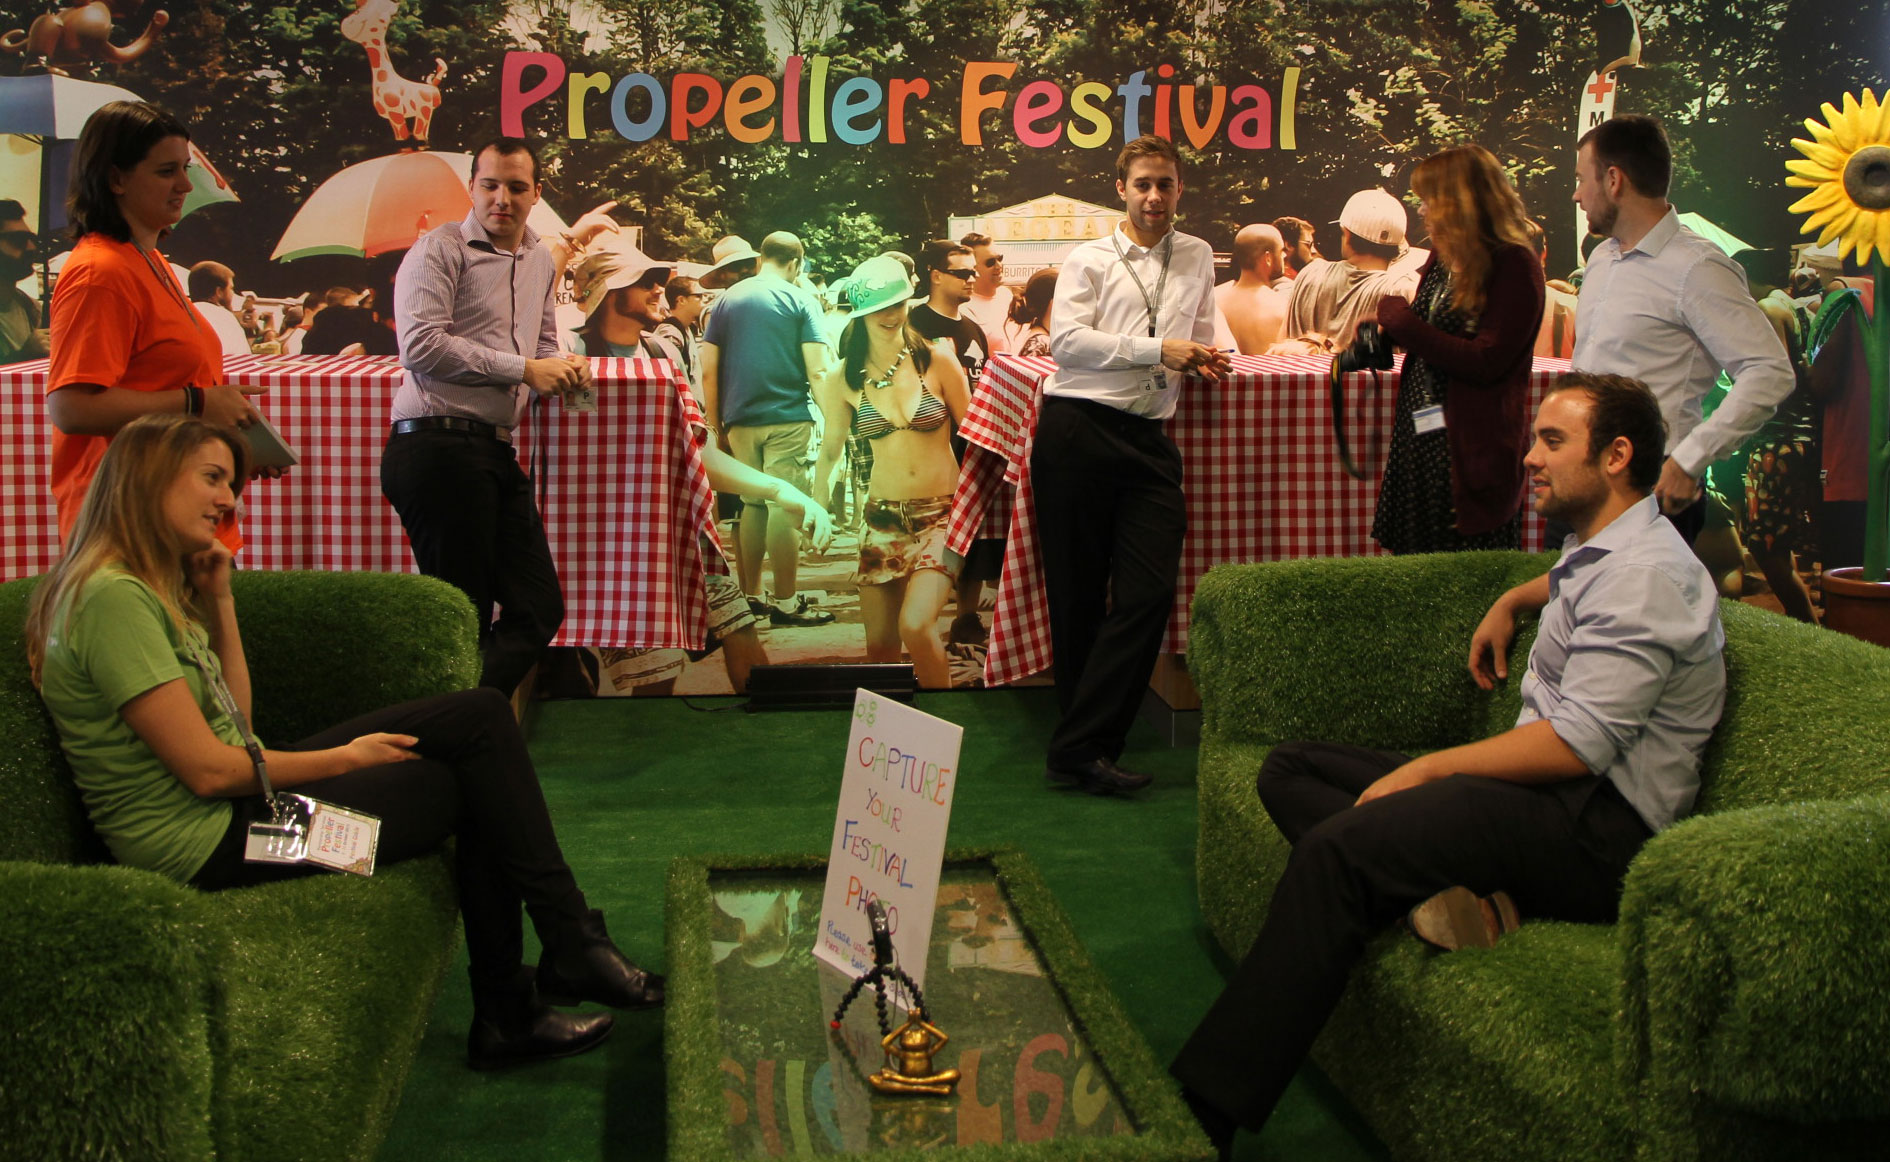 events-jlp-propeller